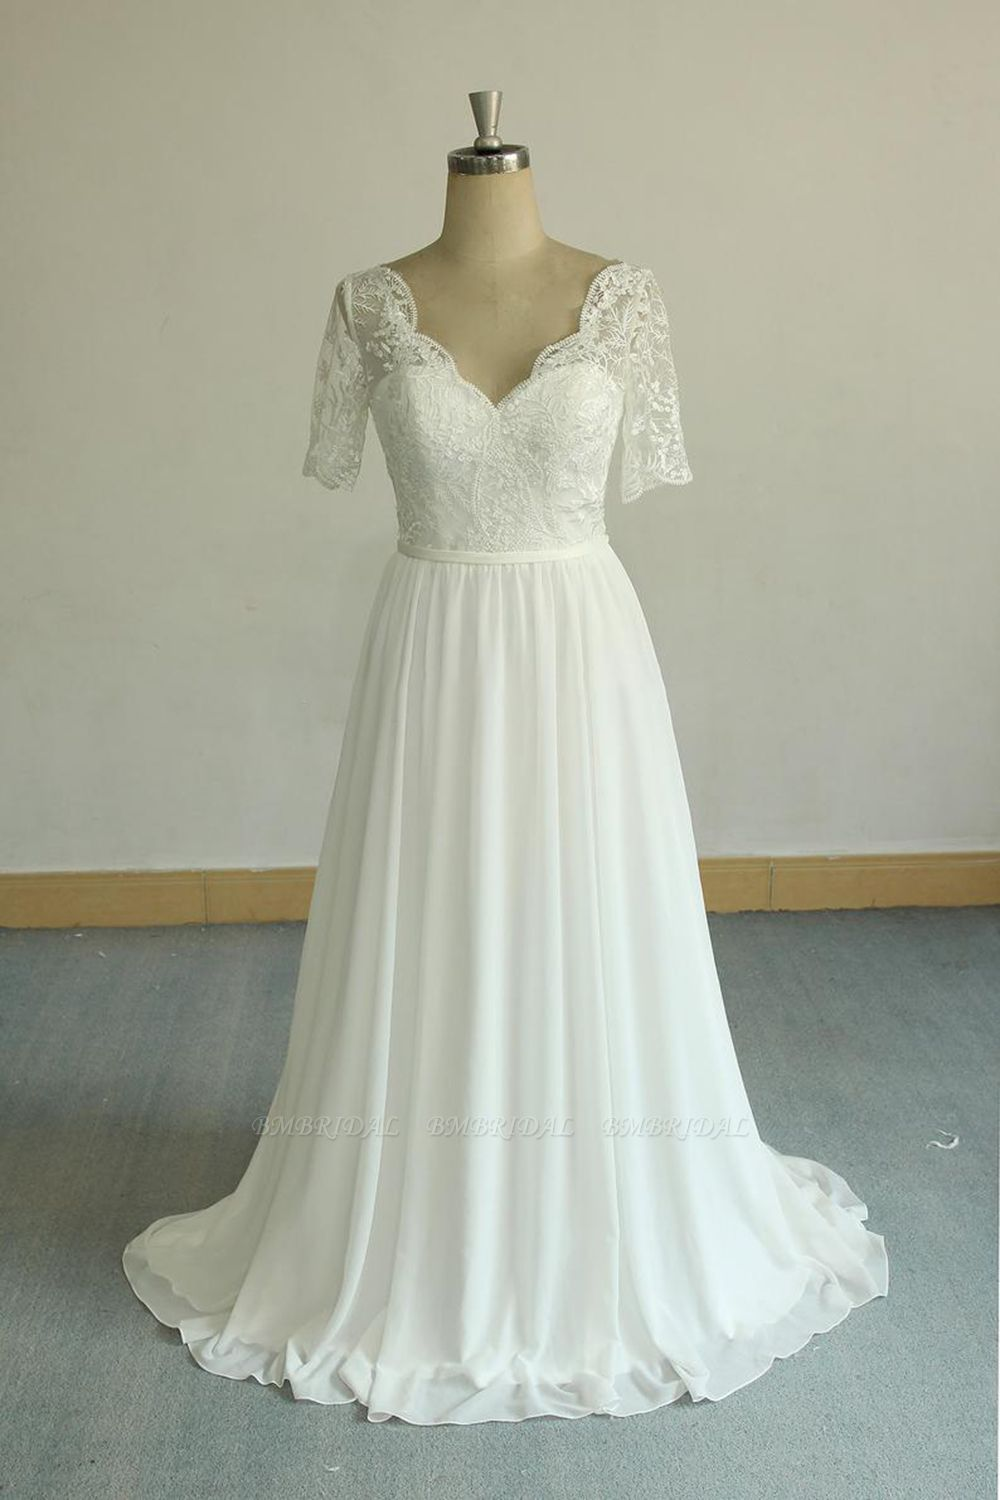 BMbridal Affordable Halfsleeves V-neck Chiffon Wedding Dresses White A-line Ruffles Bridal Gowns Online